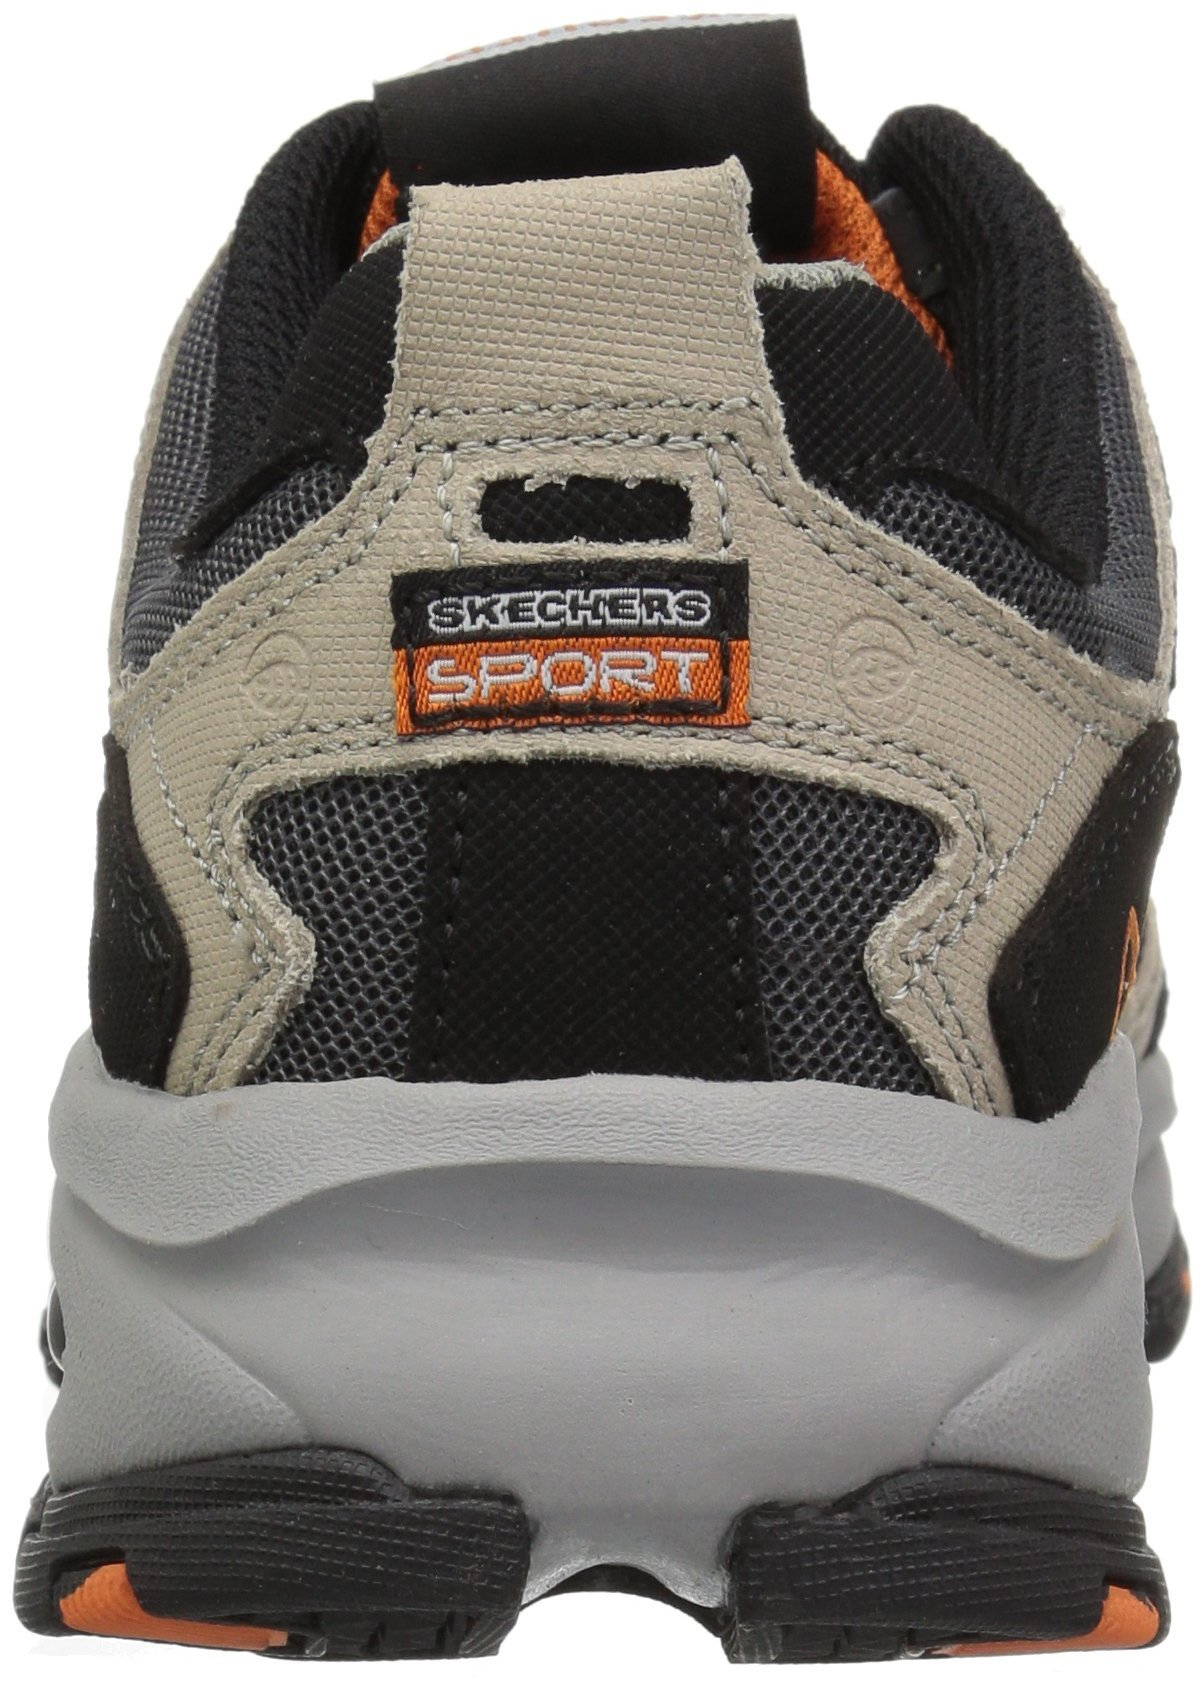 Skechers Sport Men's Vigor 2.0 Trait Memory Foam Sneaker, Taupe/Black, 7 M US by Skechers (Image #2)